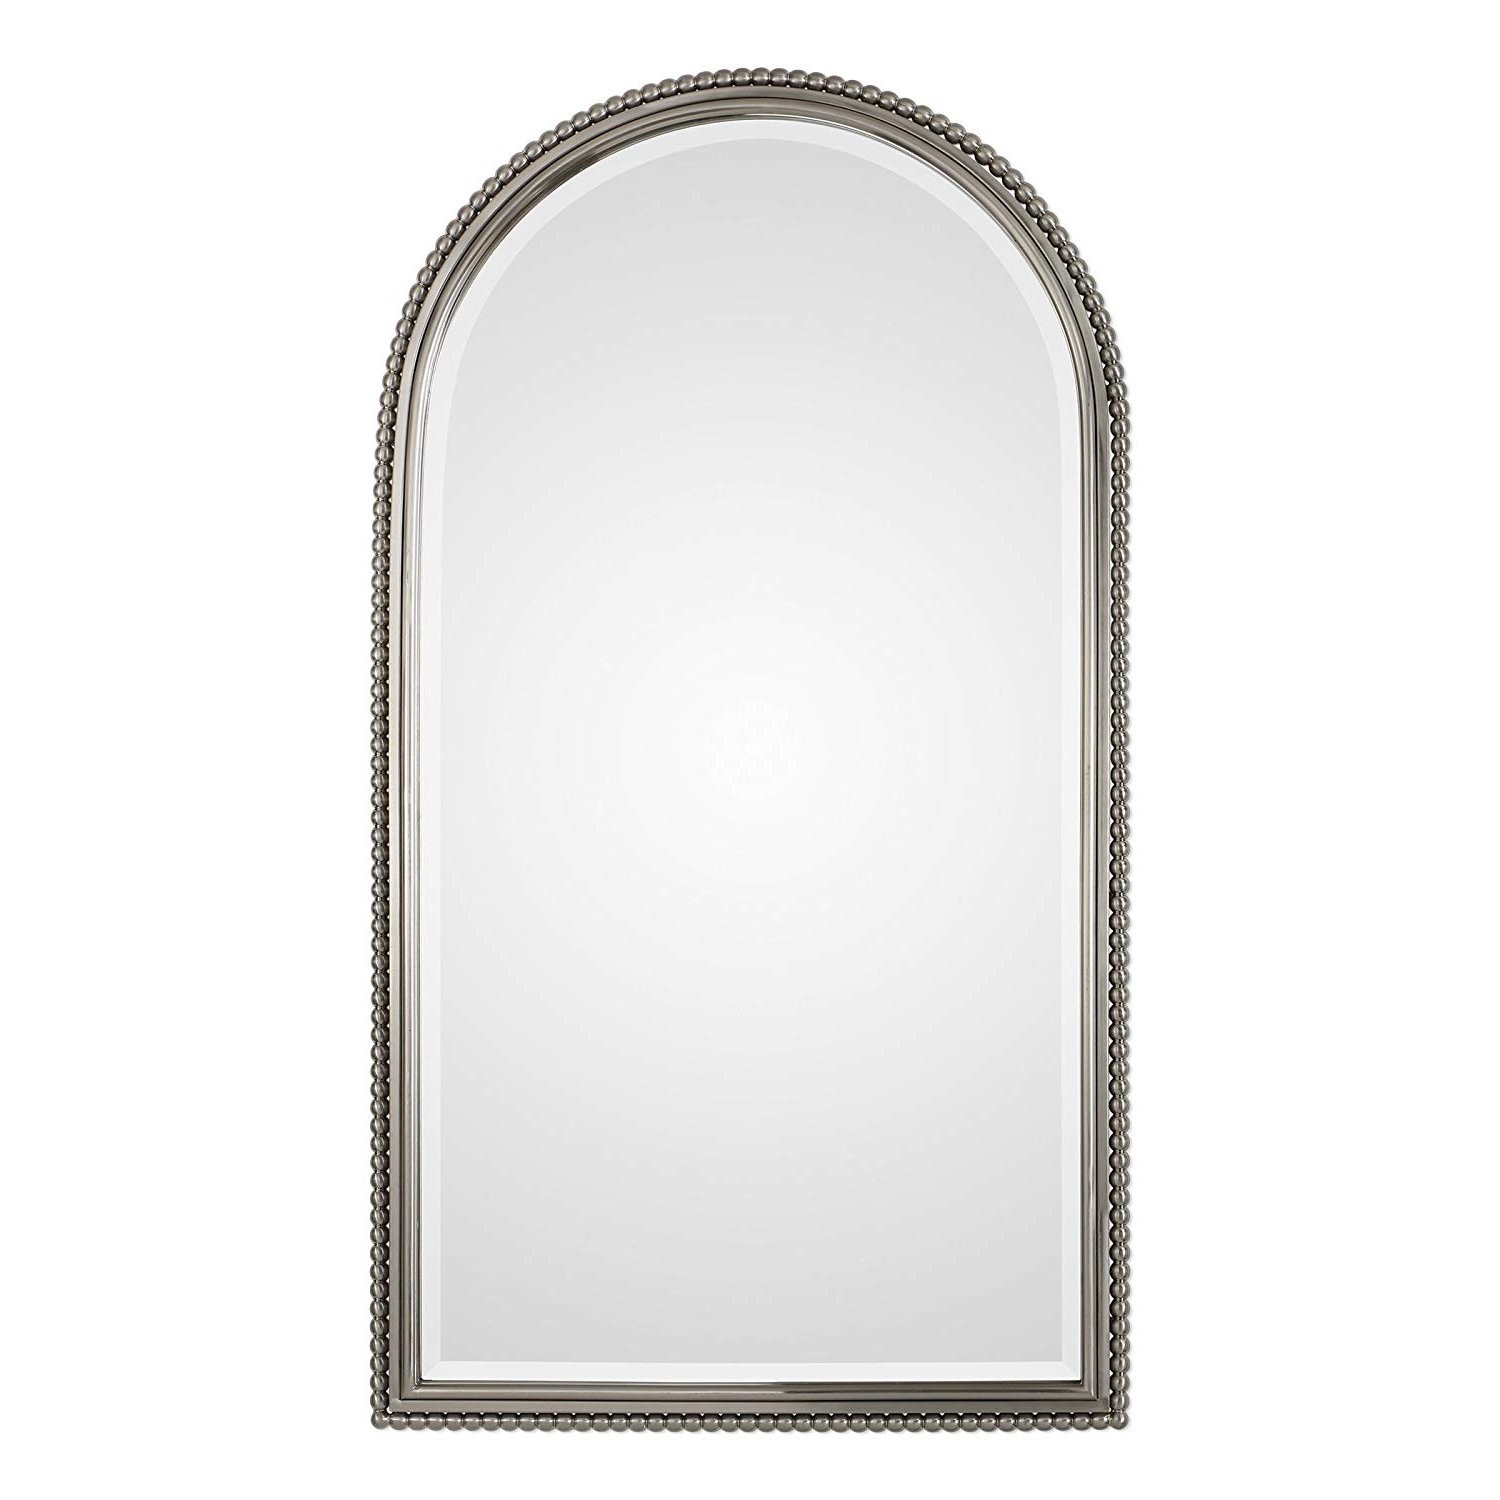 Traditional Metal Wall Mirrors Regarding Most Recent Amazon: My Swanky Home Luxe Beaded Silver Arch Metal Wall Mirror (View 1 of 20)